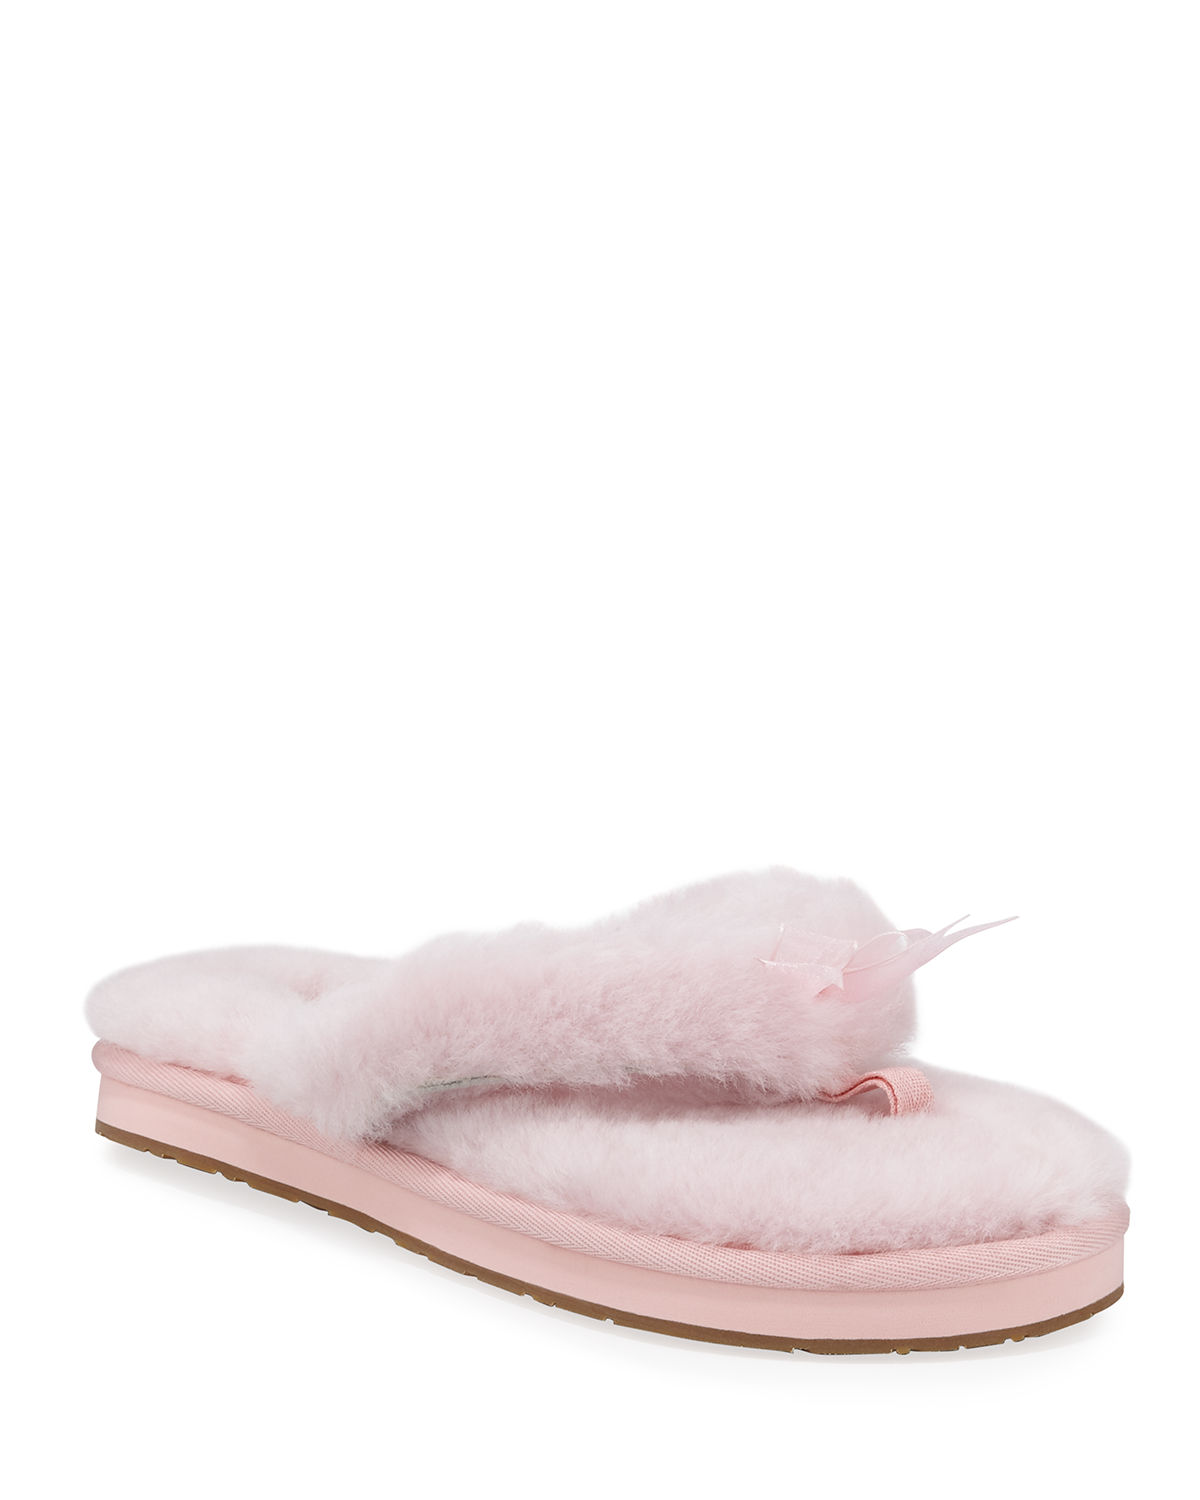 Ugg Slippers FLUFF FLIP-FLOP III SLIPPERS